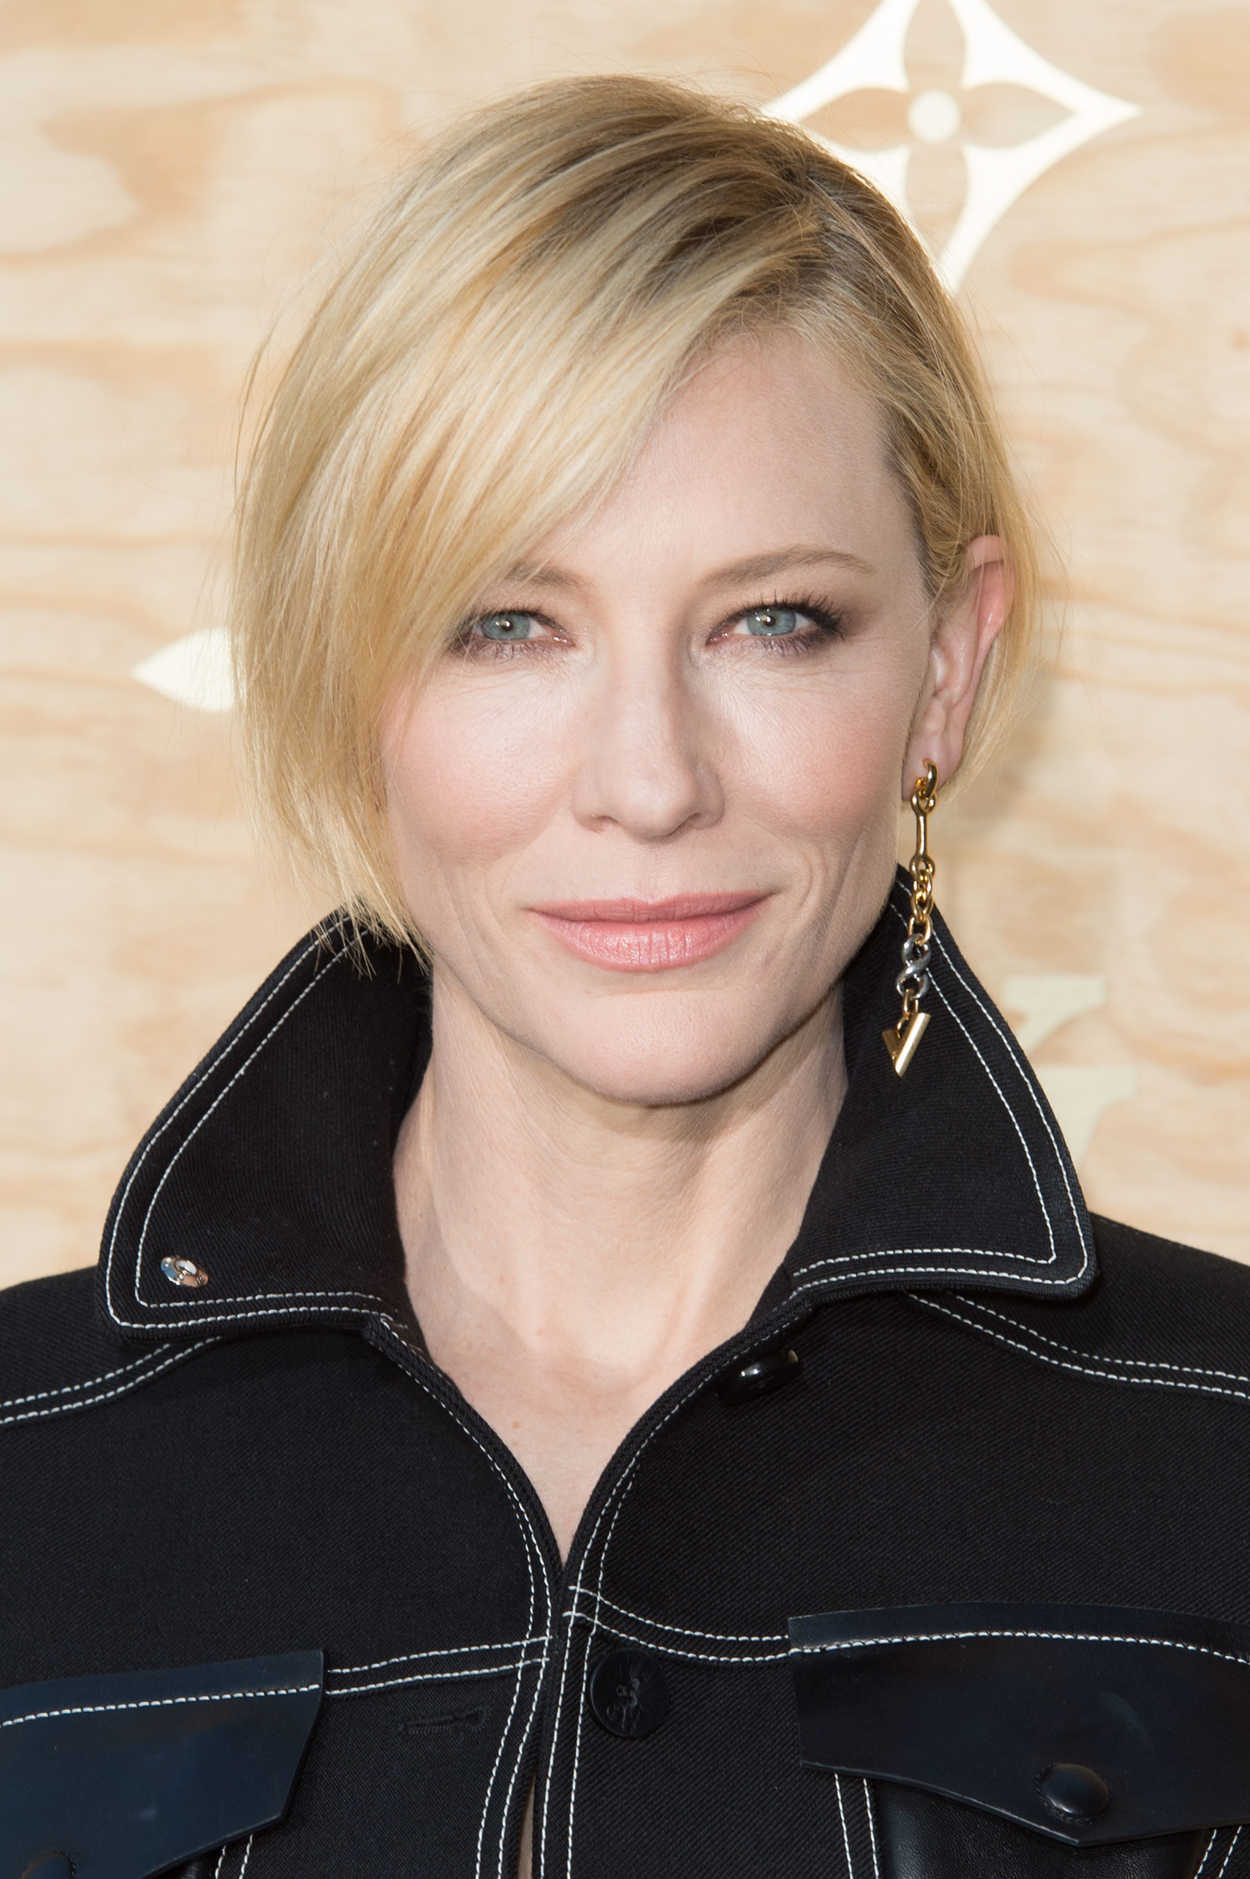 cate blanchett - photo #20